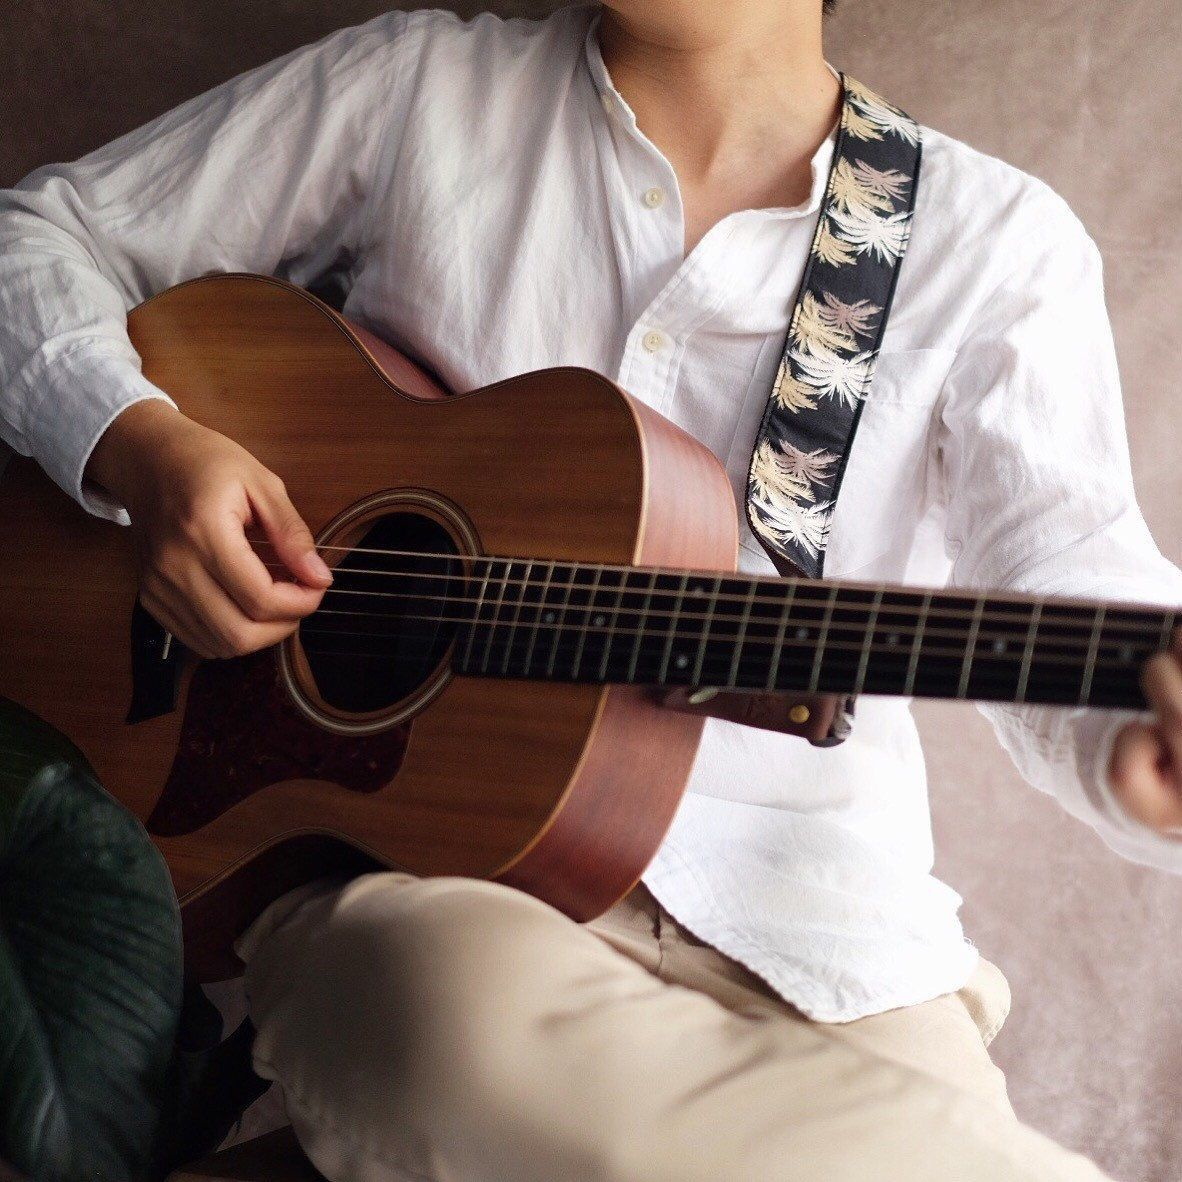 Acoustic With Black Hawaii Guitar Strap Guitarstraps Acoustic Guitar Guitar Boy Guitar Photography